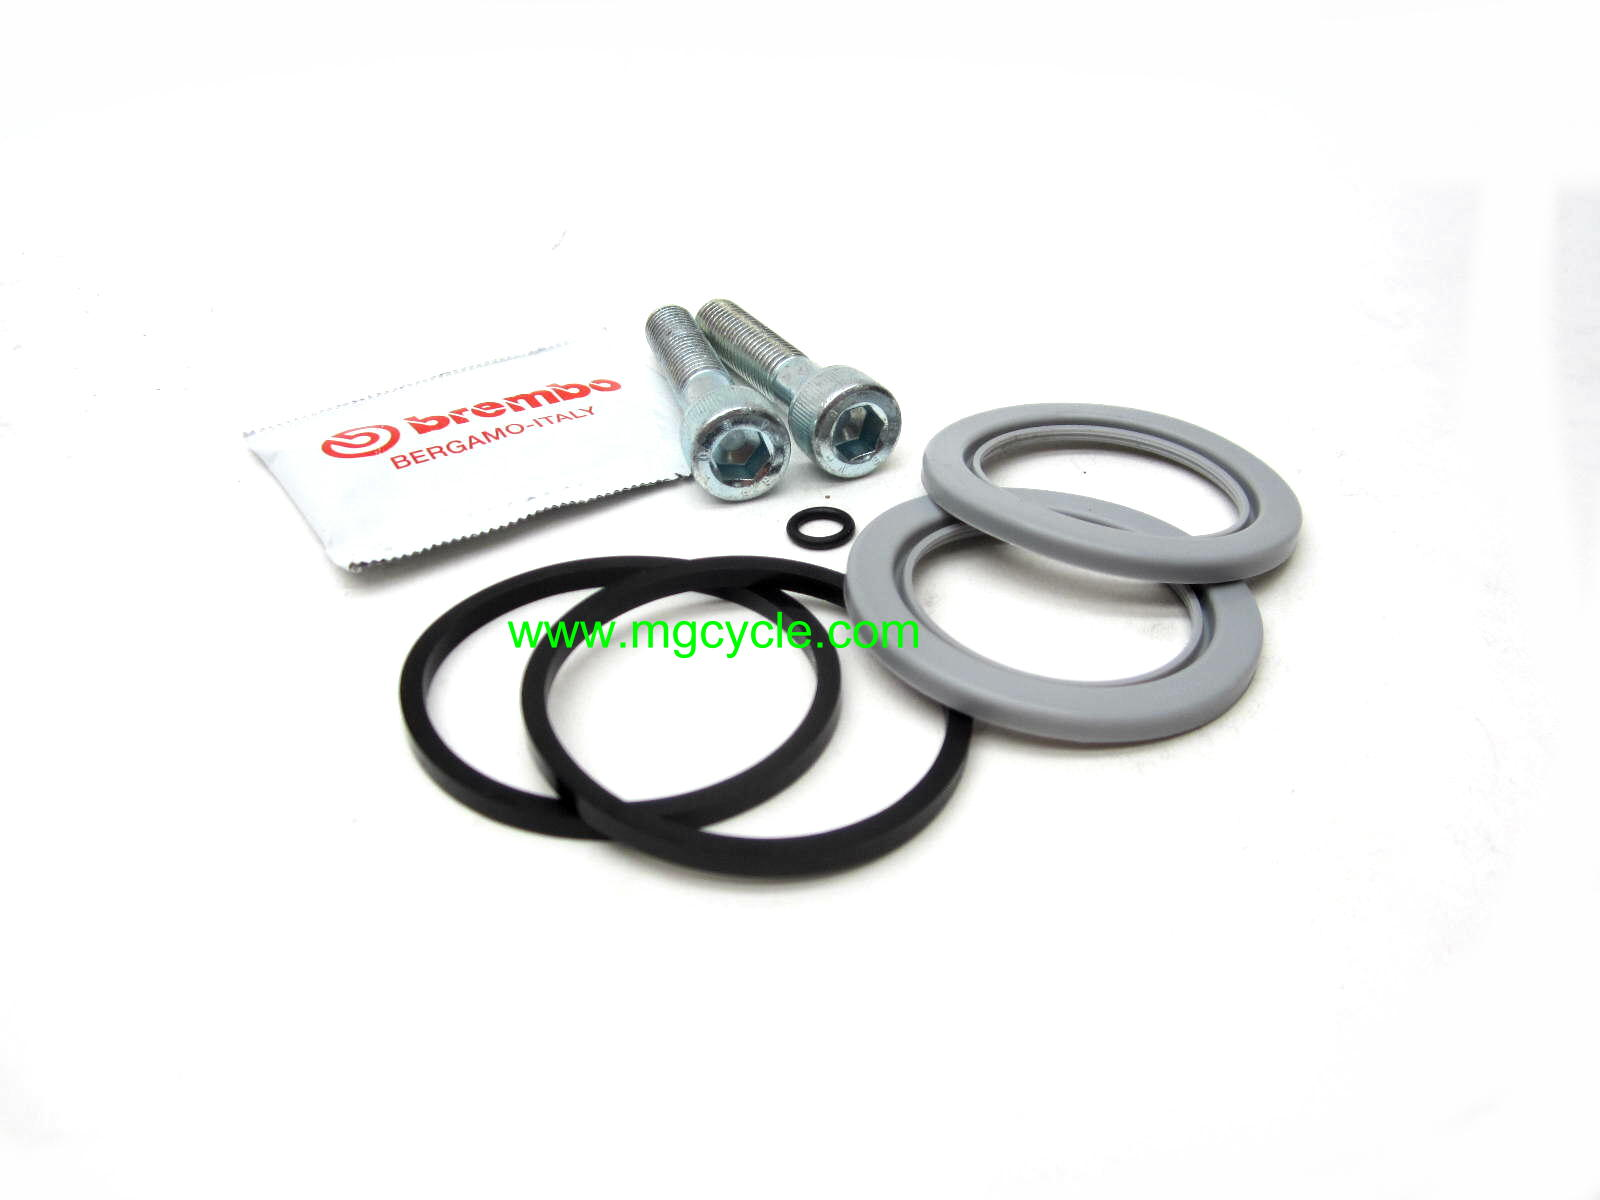 Brembo seal kit for 48mm F09 caliper SP1000 BMW GU18659050